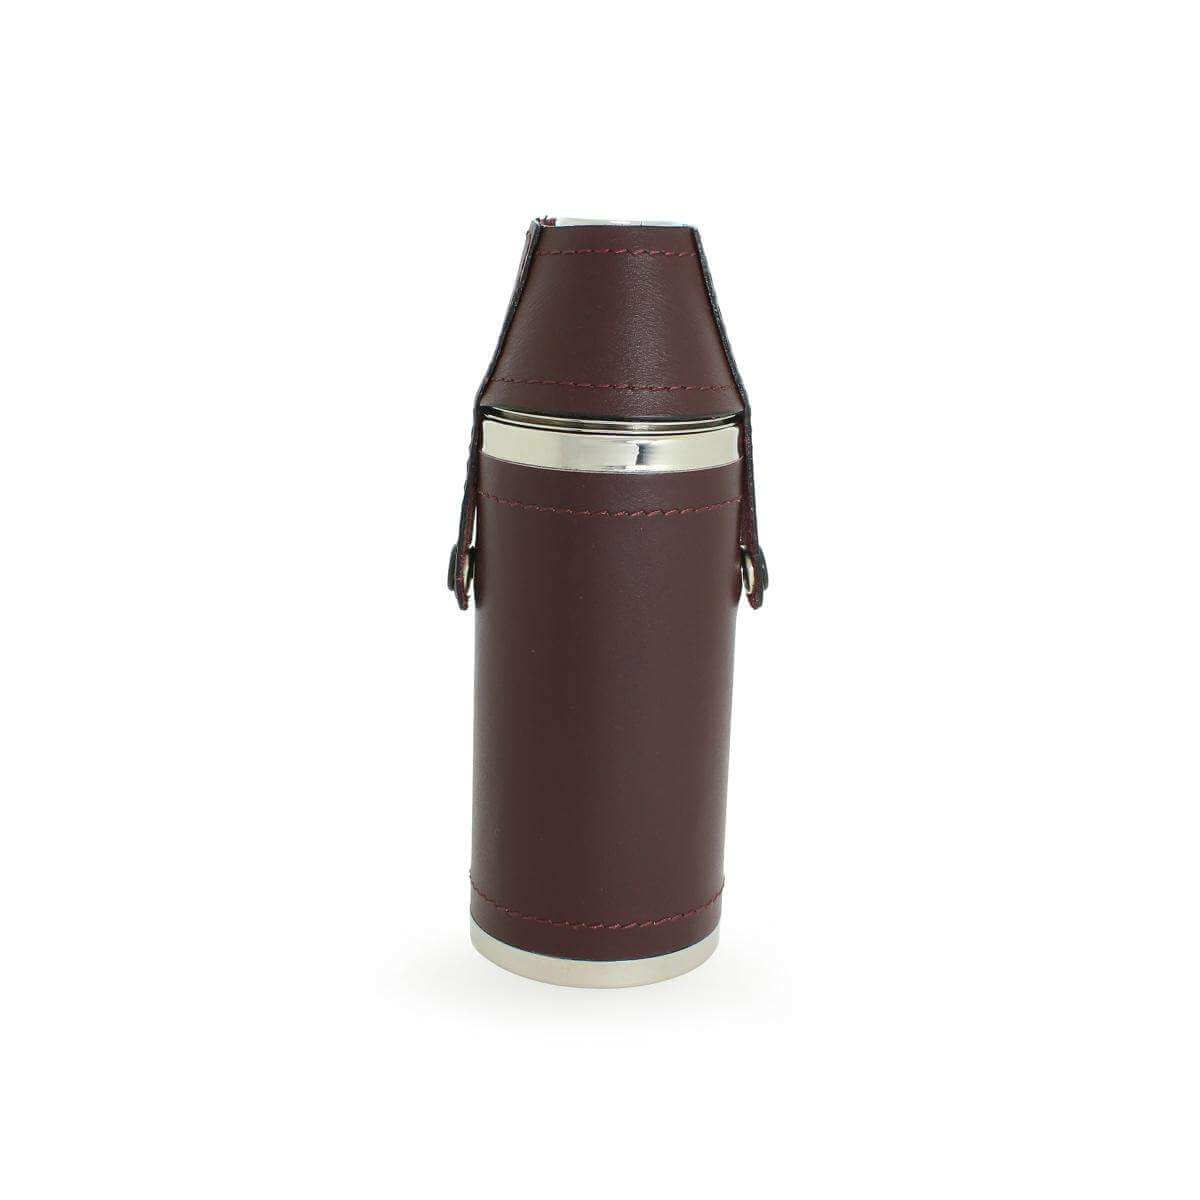 8oz Stainless Steel Hunting Flask with Nip Cups Wrapped in Burgundy Leather